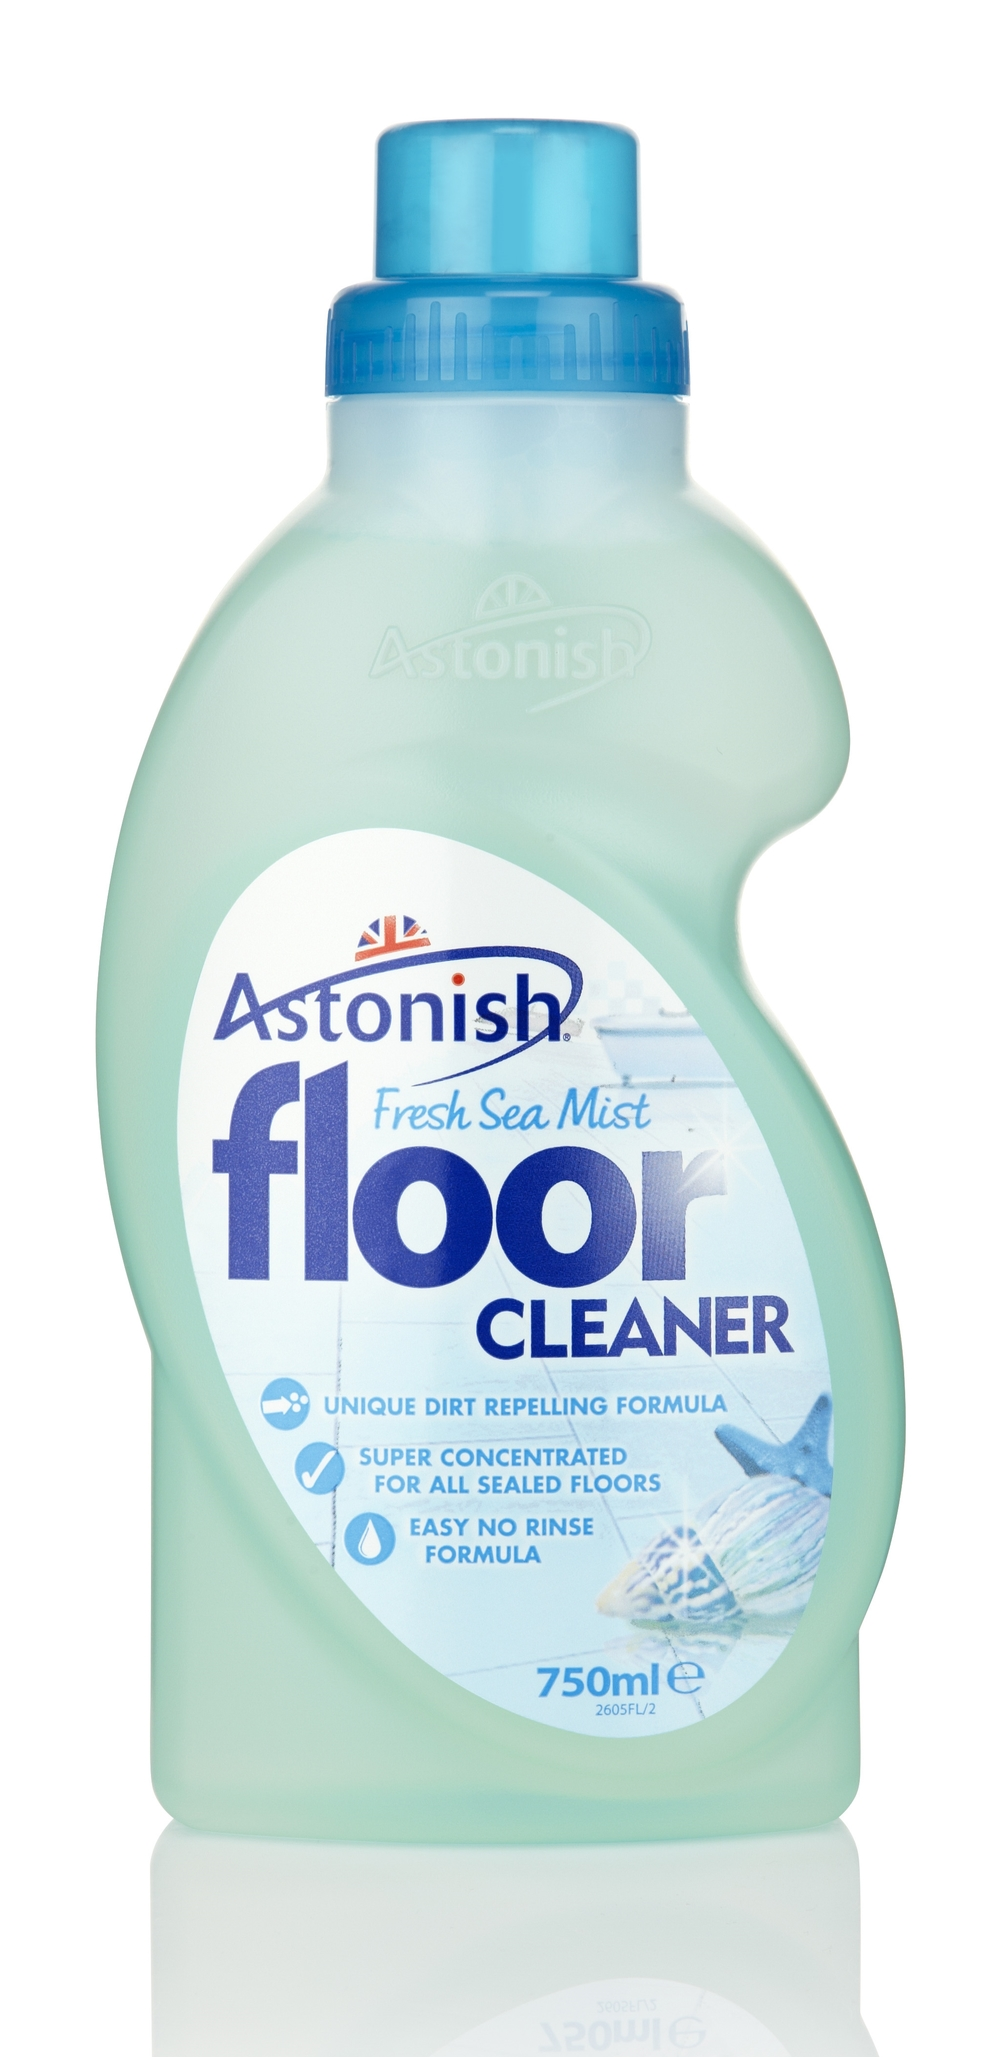 Astonish Floor Cleaner Fresh Sea Mist 750ml.jpg